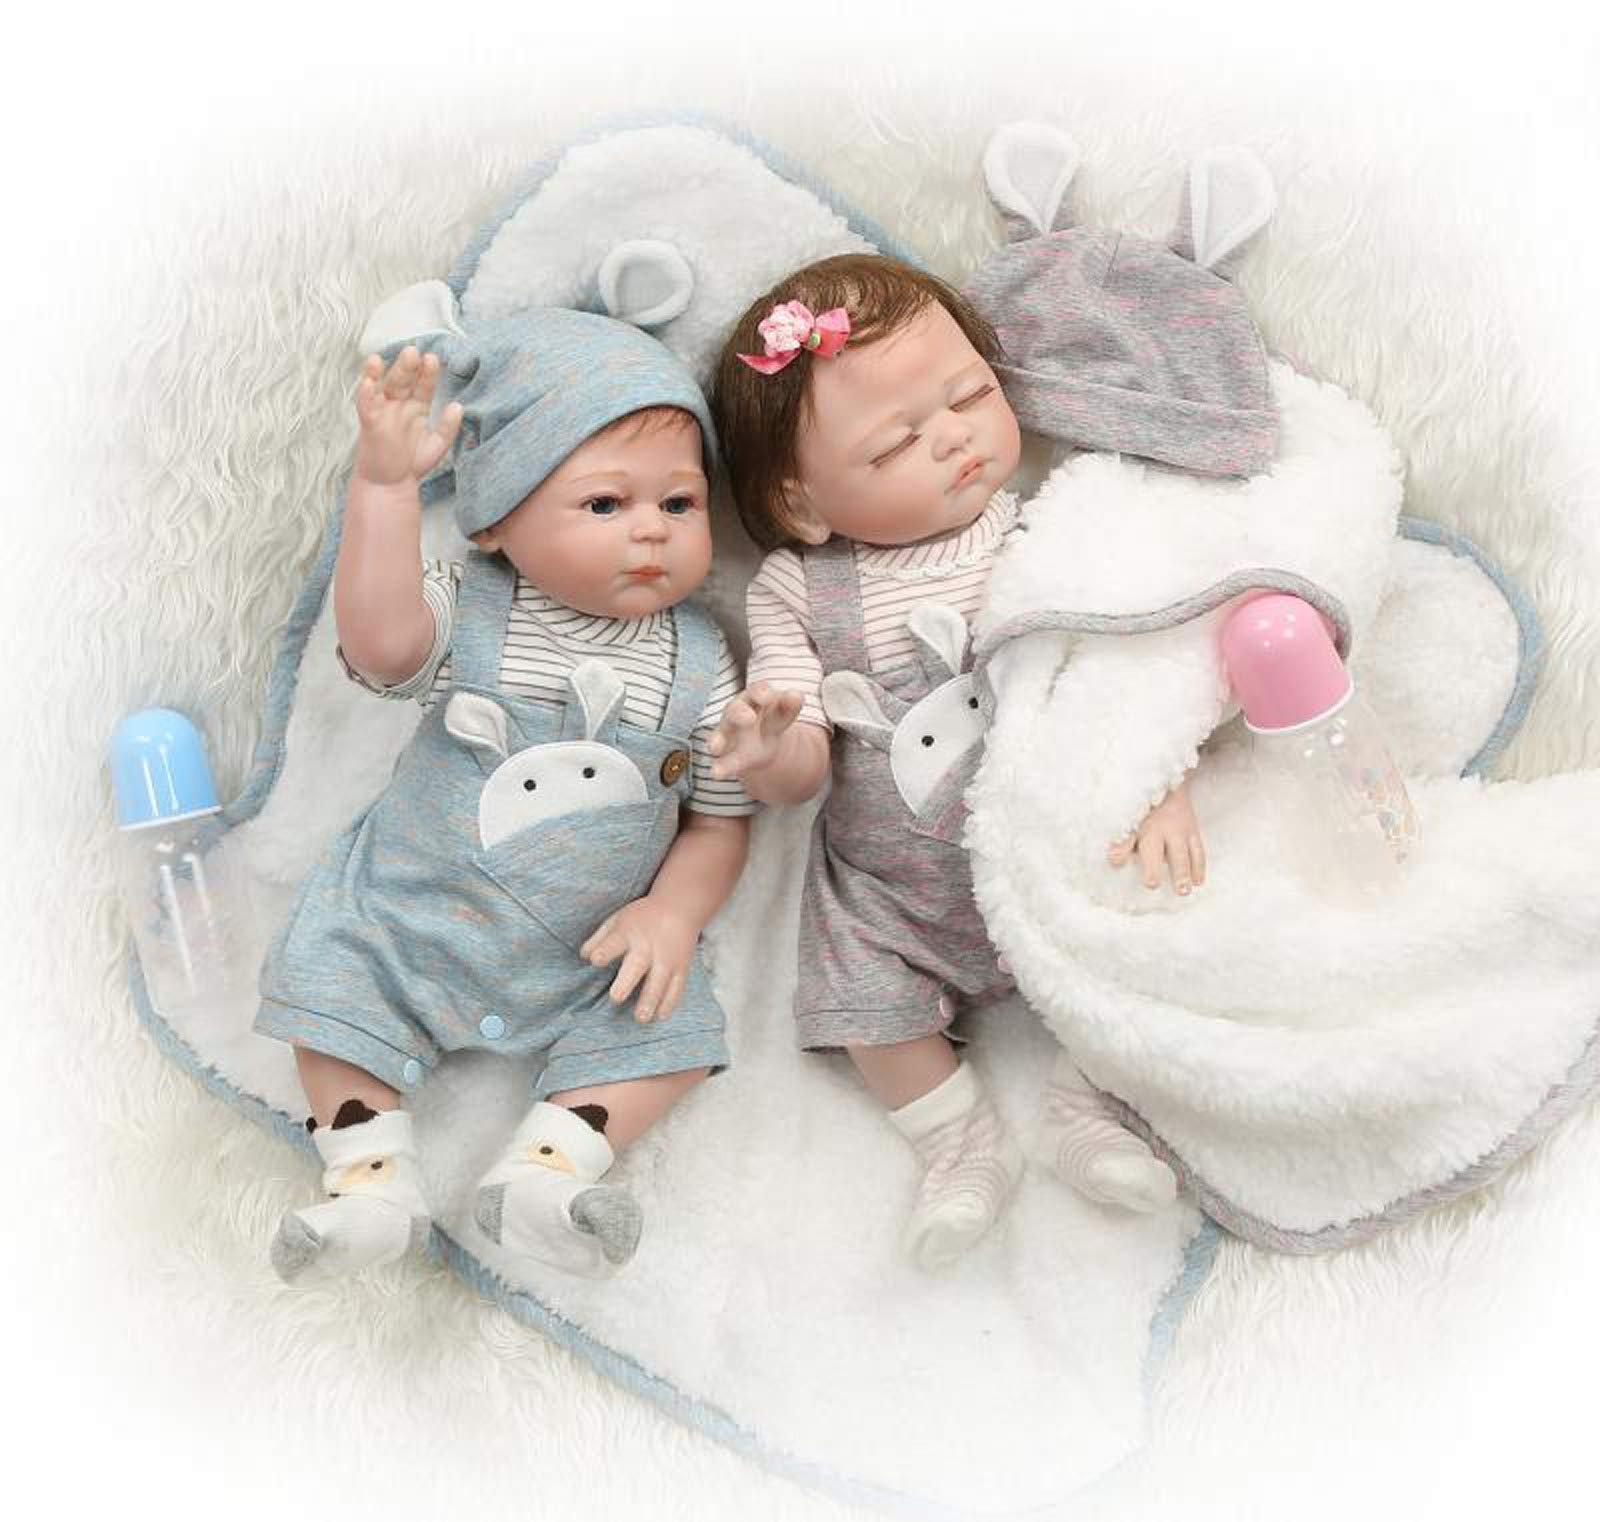 TERABITHIA 20inch 50cm Realistic Couple Reborn Baby Doll in Silicone Vinyl Full Body Look Real Newborn Dolls Twins Washable for Kids